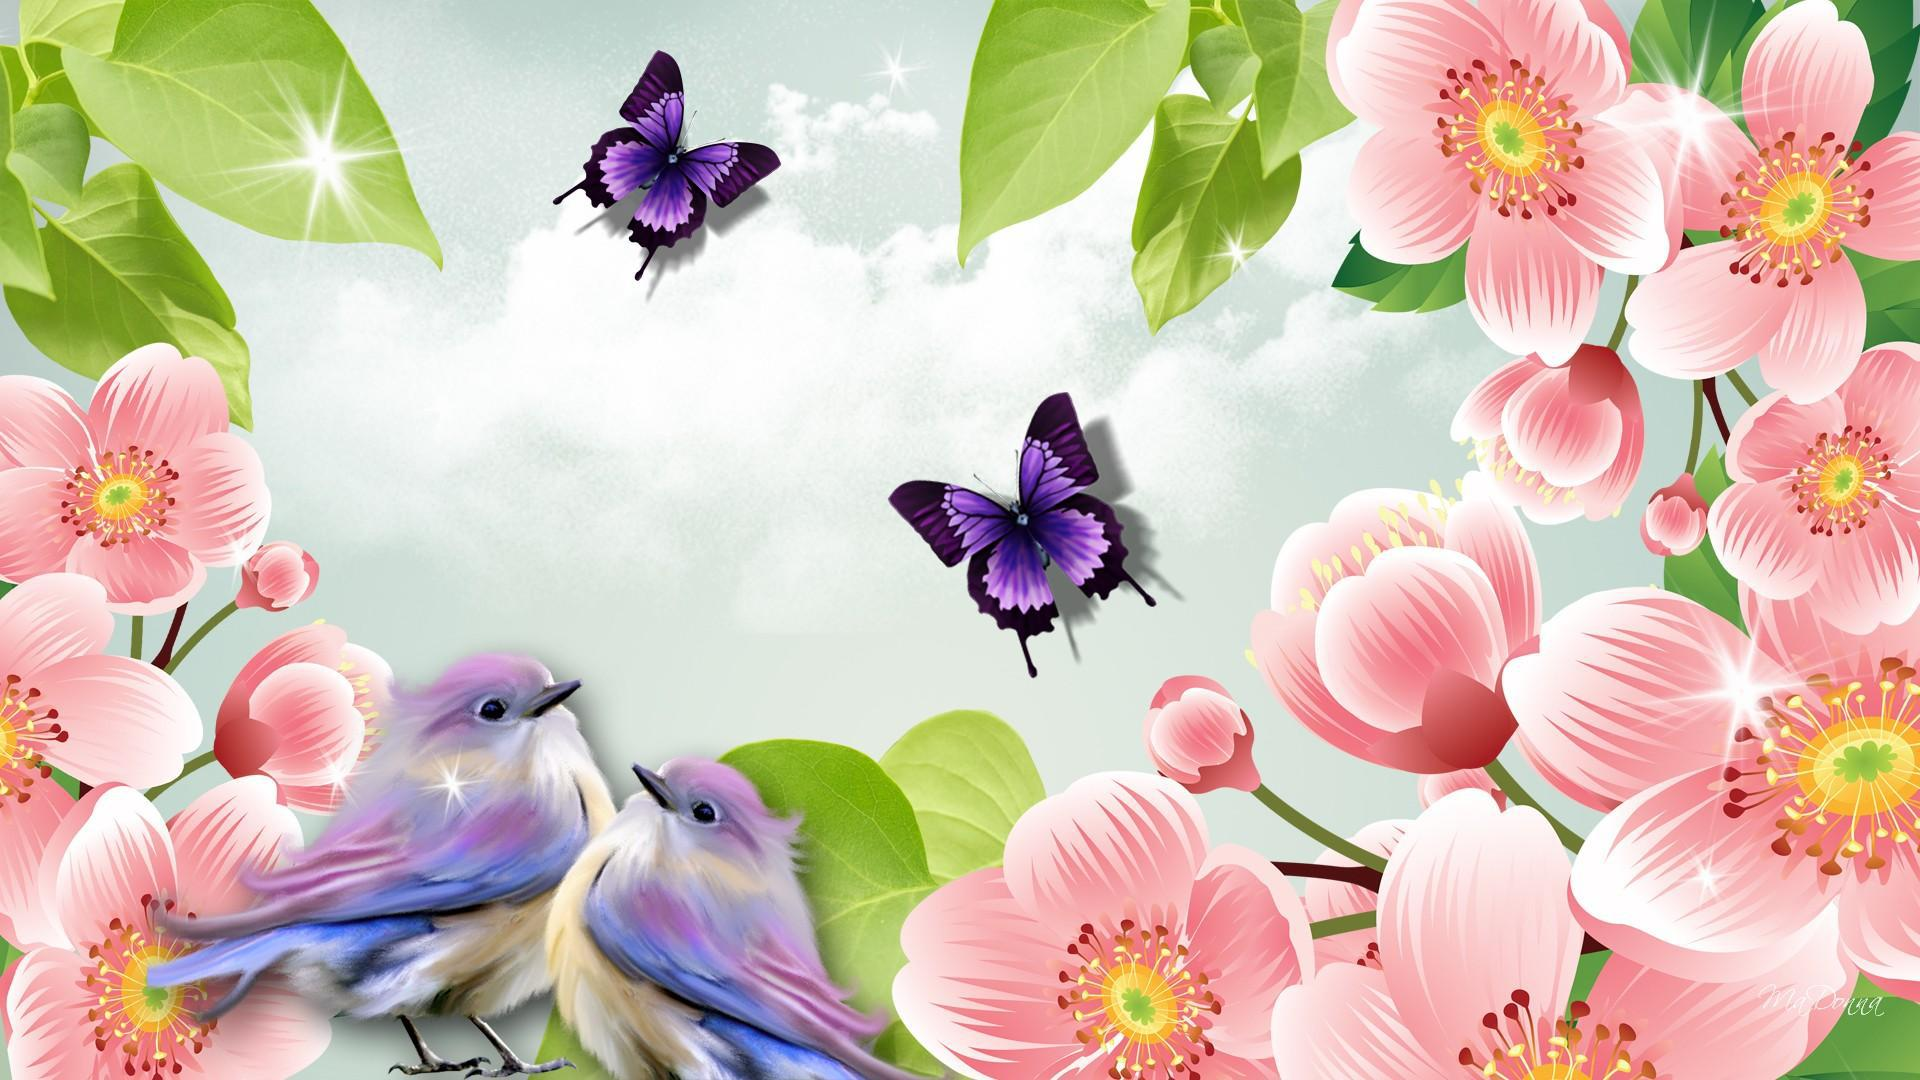 Spring Summer HD desktop wallpaper Widescreen High Definition 1920x1080